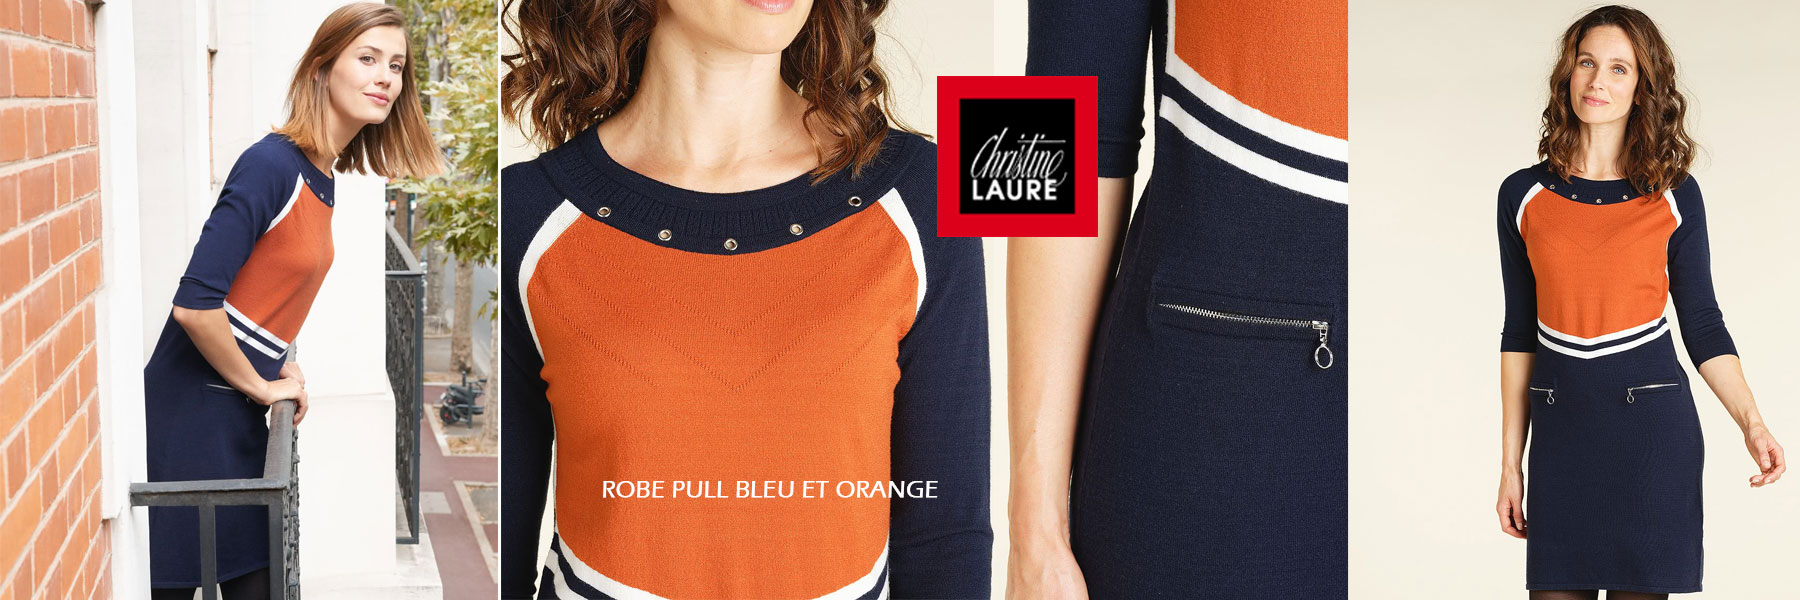 ROBE PULL BLEU ET ORANGE Christine Laure